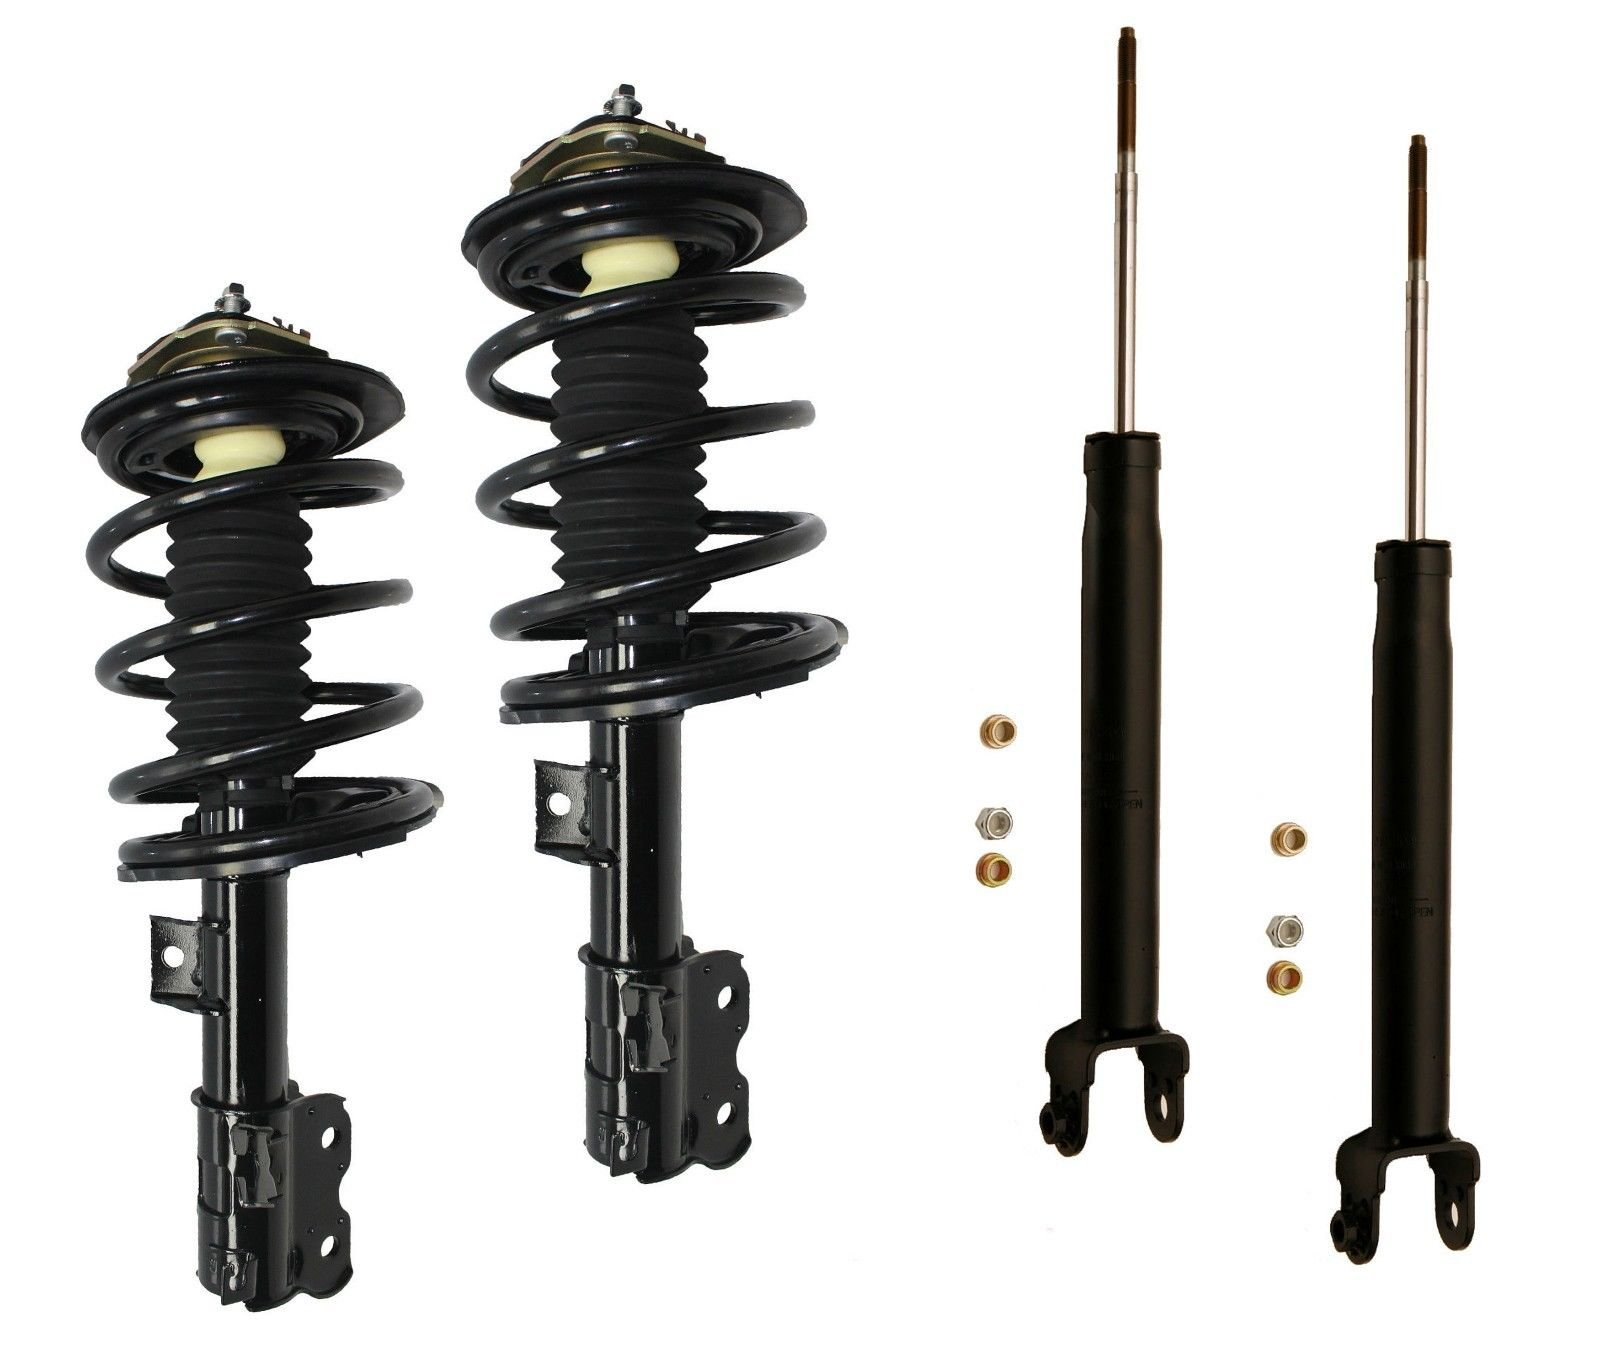 cheap nissan altima shocks and struts, find nissan altima shocks andget quotations · dta 70024 full set 2 front complete struts with springs and mounts 2 rear shocks